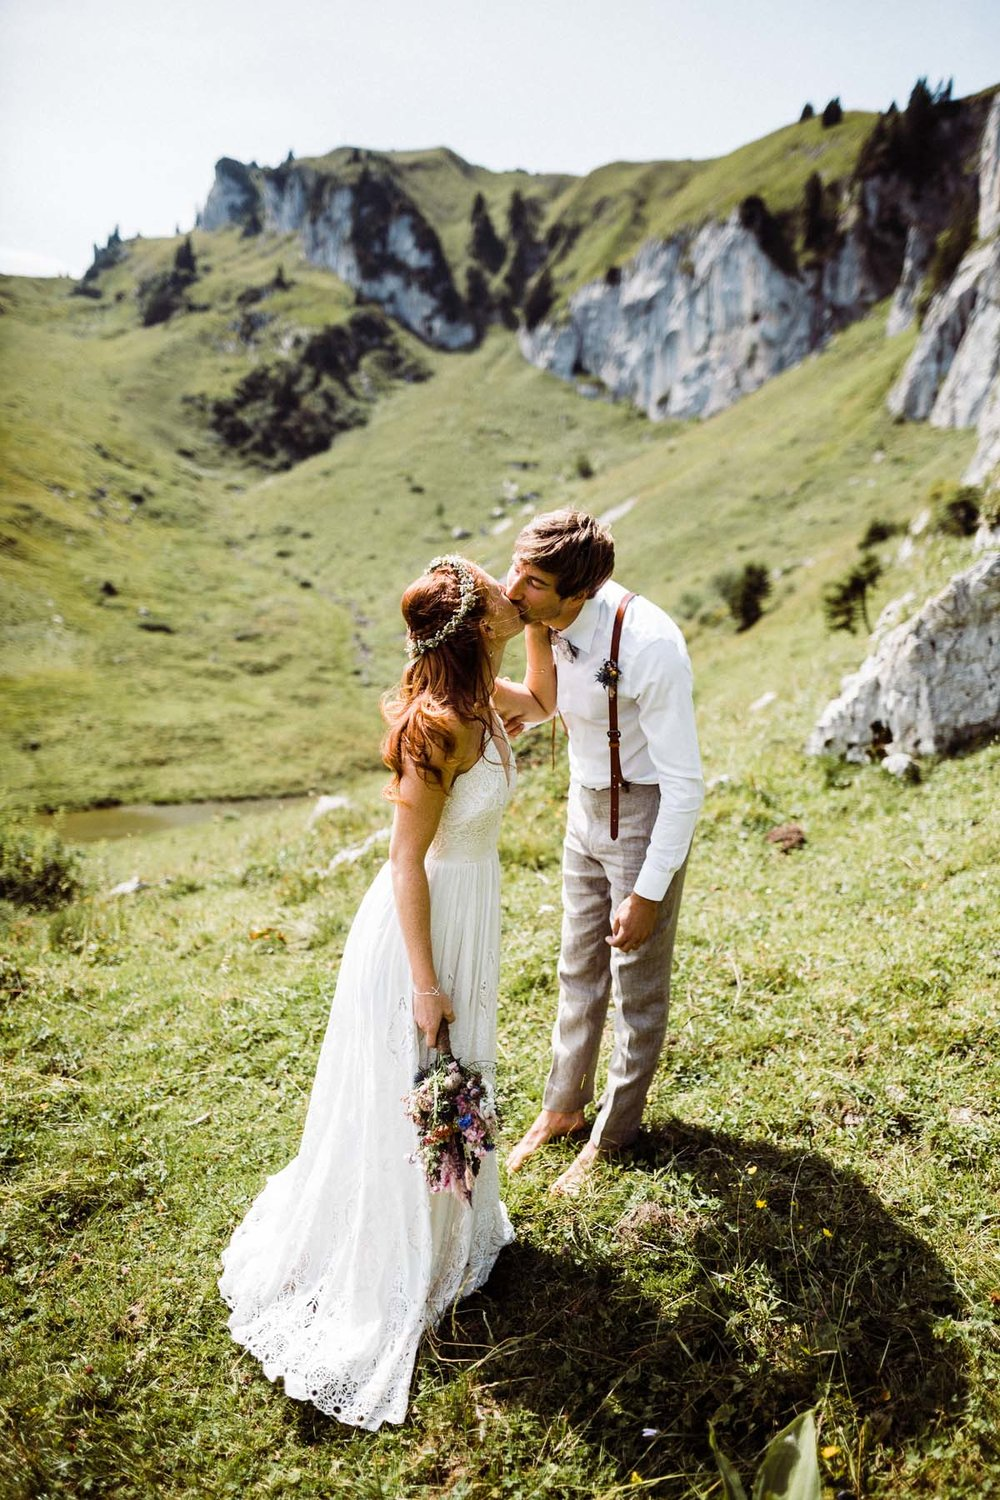 bavaria-wedding-bavarian-alps-boho-mountain-wedding-germany-bavaria-wedding-photographer (67).jpg